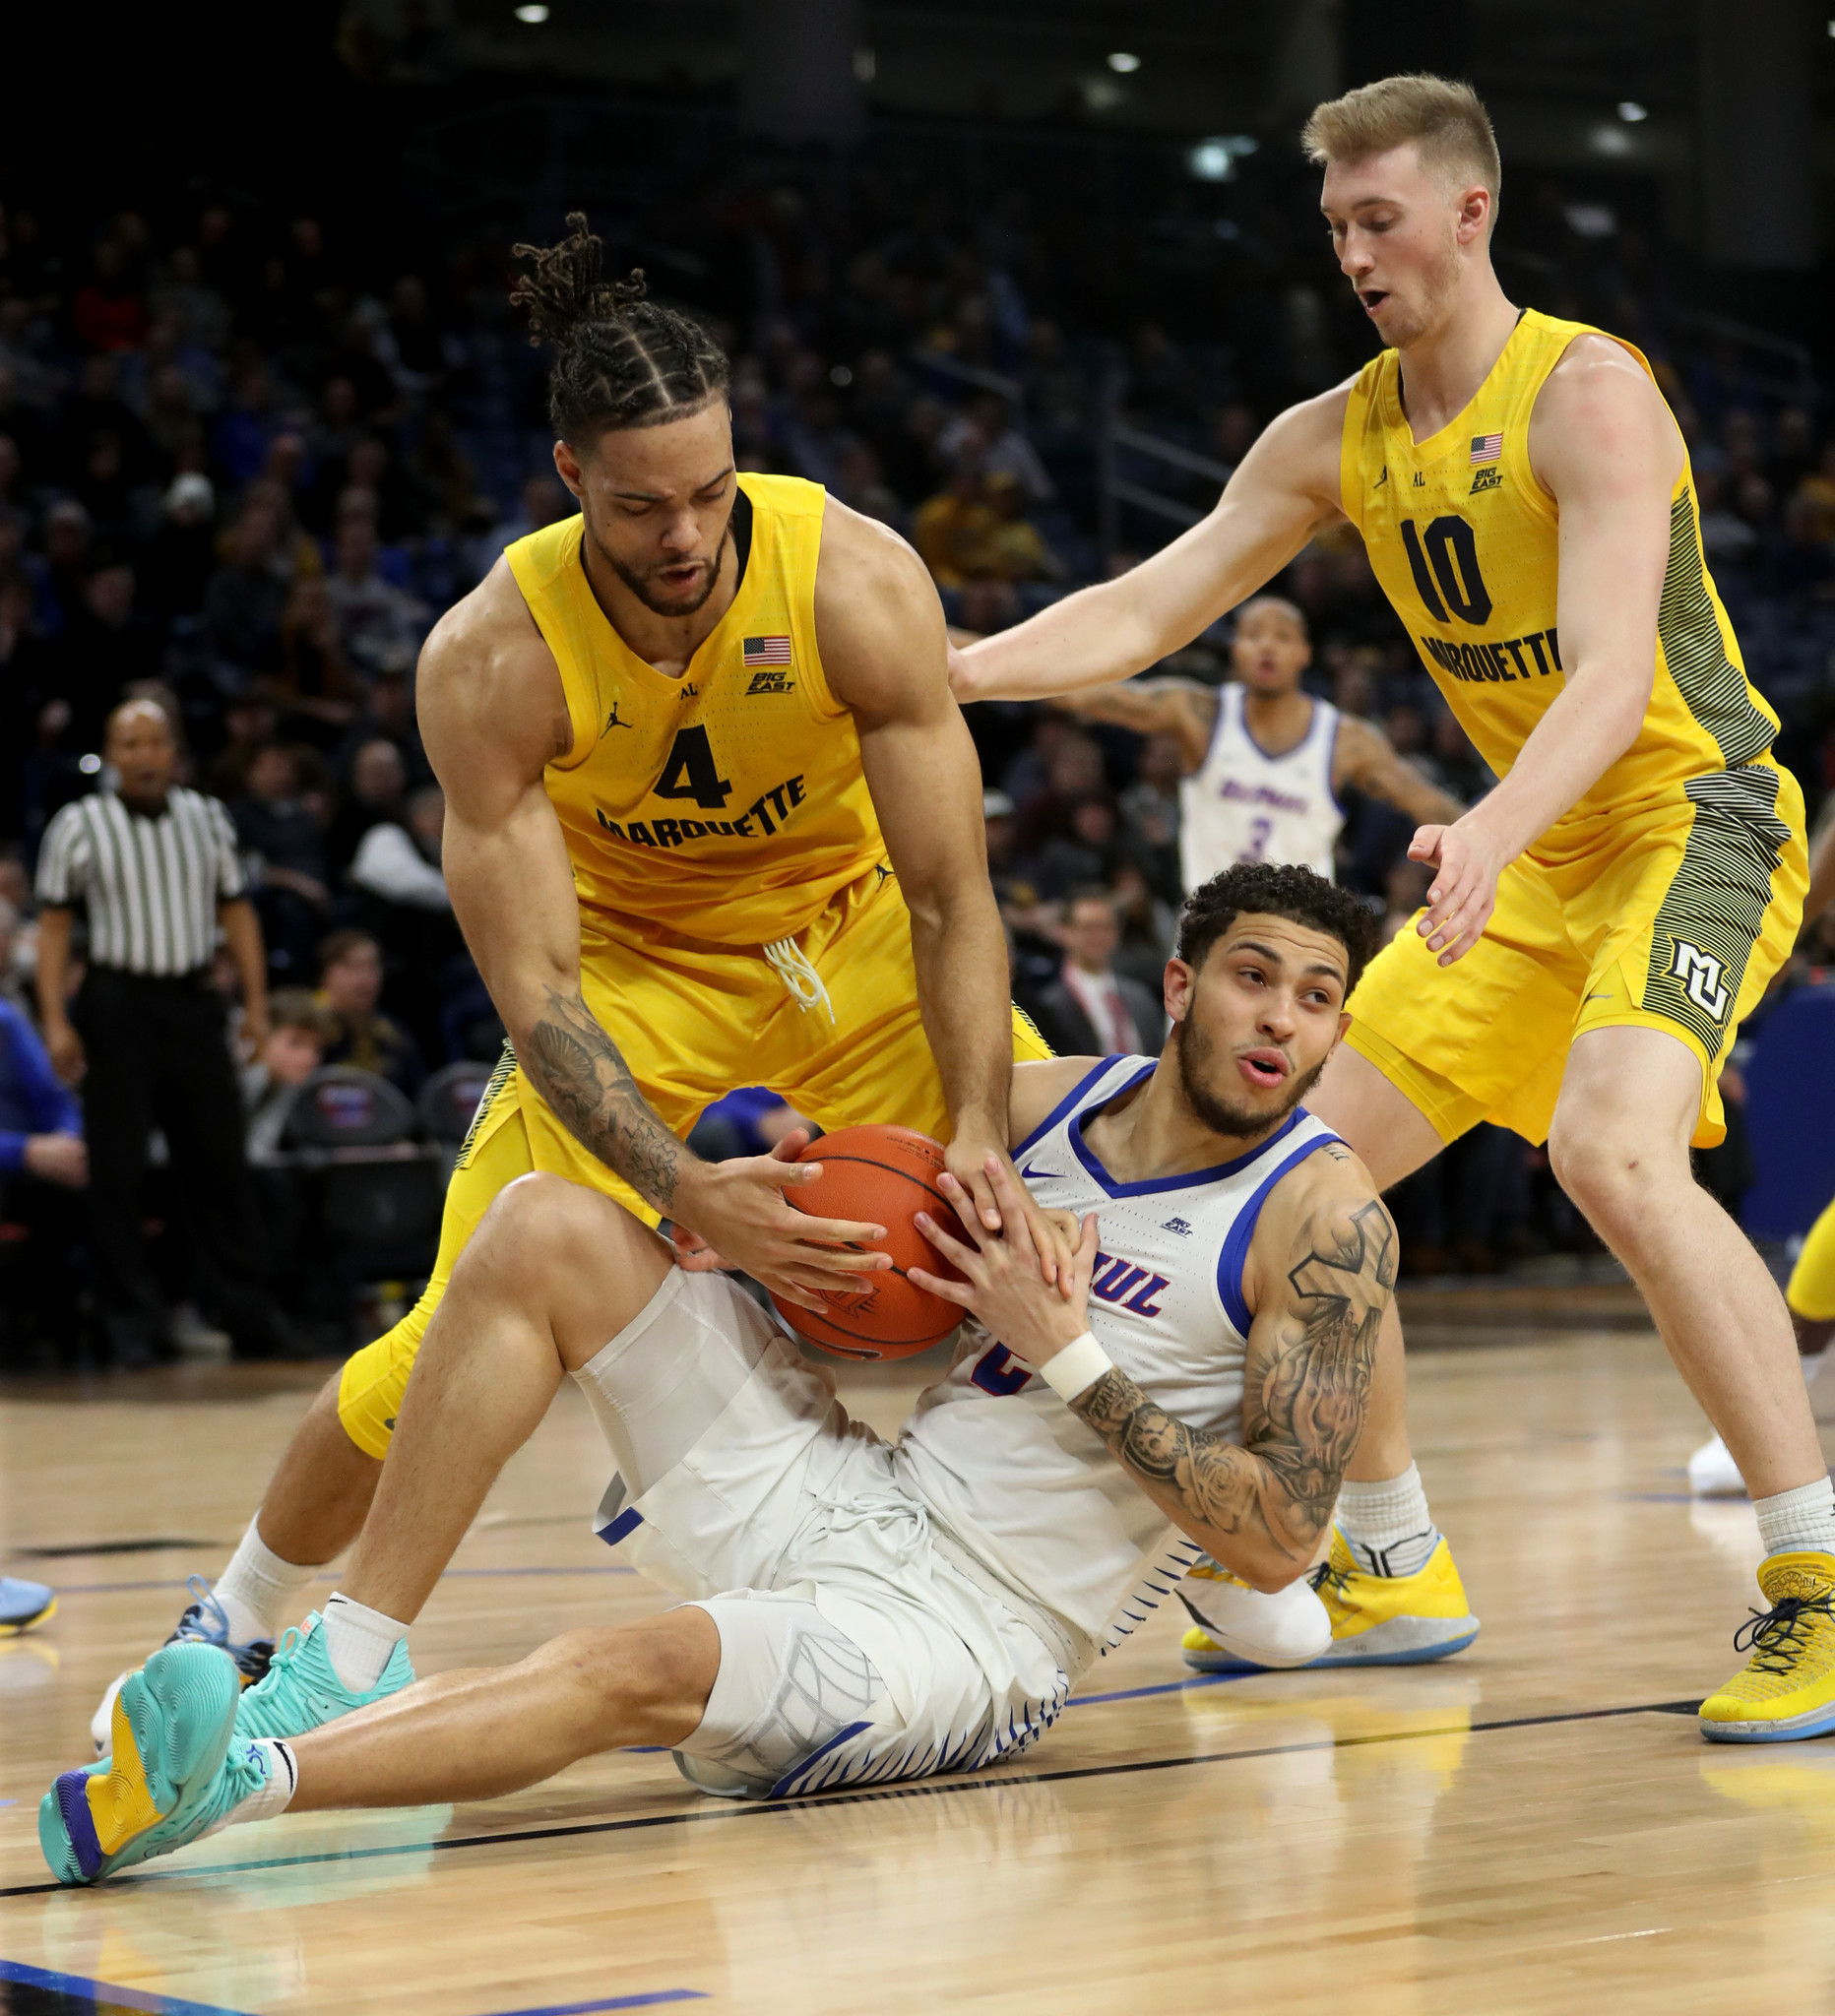 DePaul taking baby steps, but 92-73 loss to No. 10 Marquette shows there's still work to do